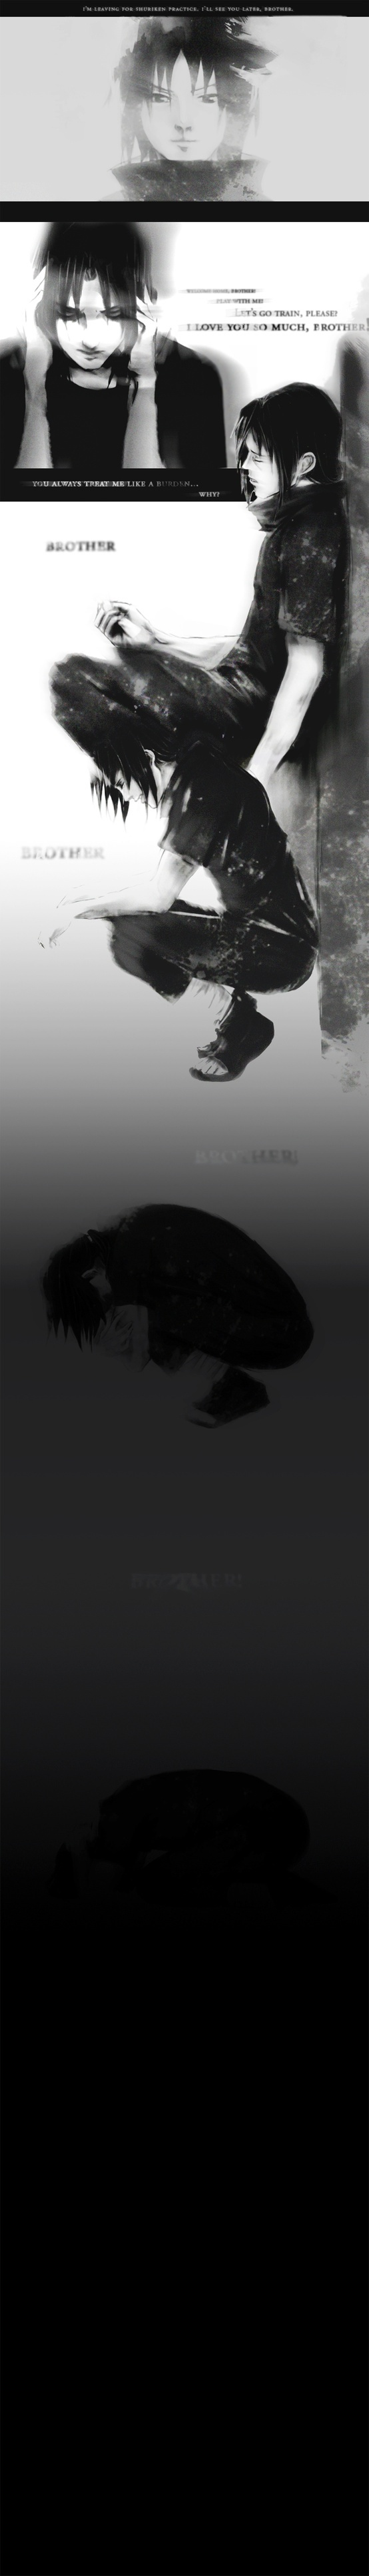 "Slowly, he felt himself fading away. The darkness was overwhelming; the light seemed to run from him. ""I love you, Big Brother!"" Itachi held his head in his palms, his body shaking. ""Why... Why did you kill them?!"" Sasuke's voice echoed in his head. The pain in Sasuke's eyes... The hatred and betrayal. His innocent eyes clouded with revenge. And all Itachi could do was watch his brother spiral into an endless abyss of darkness, just as he was. ""Forgive me... Sasuke."""